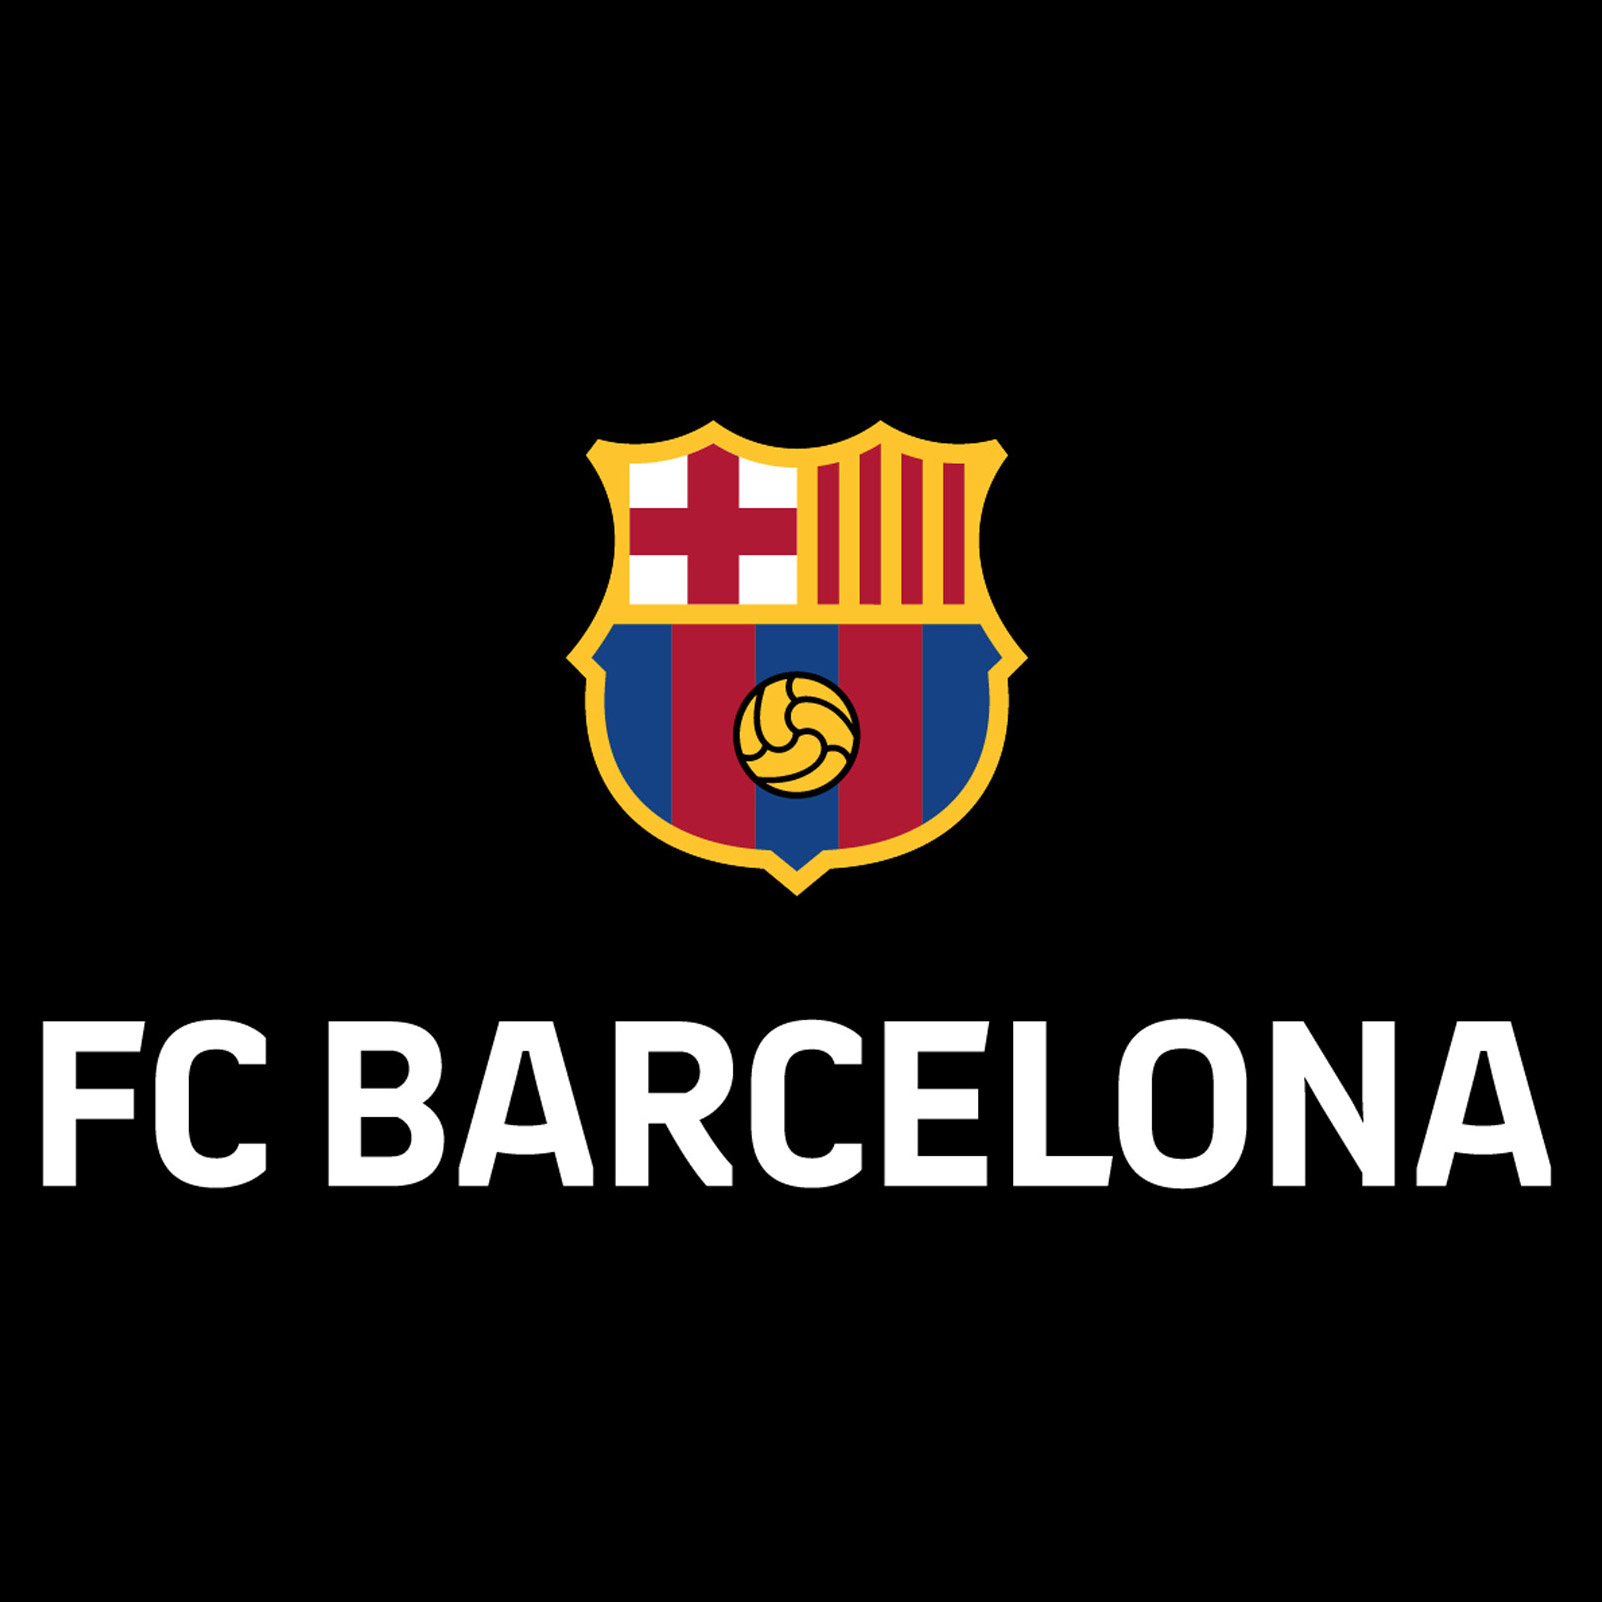 800c9bc59 Barcelona simplifies crest to promote the team in